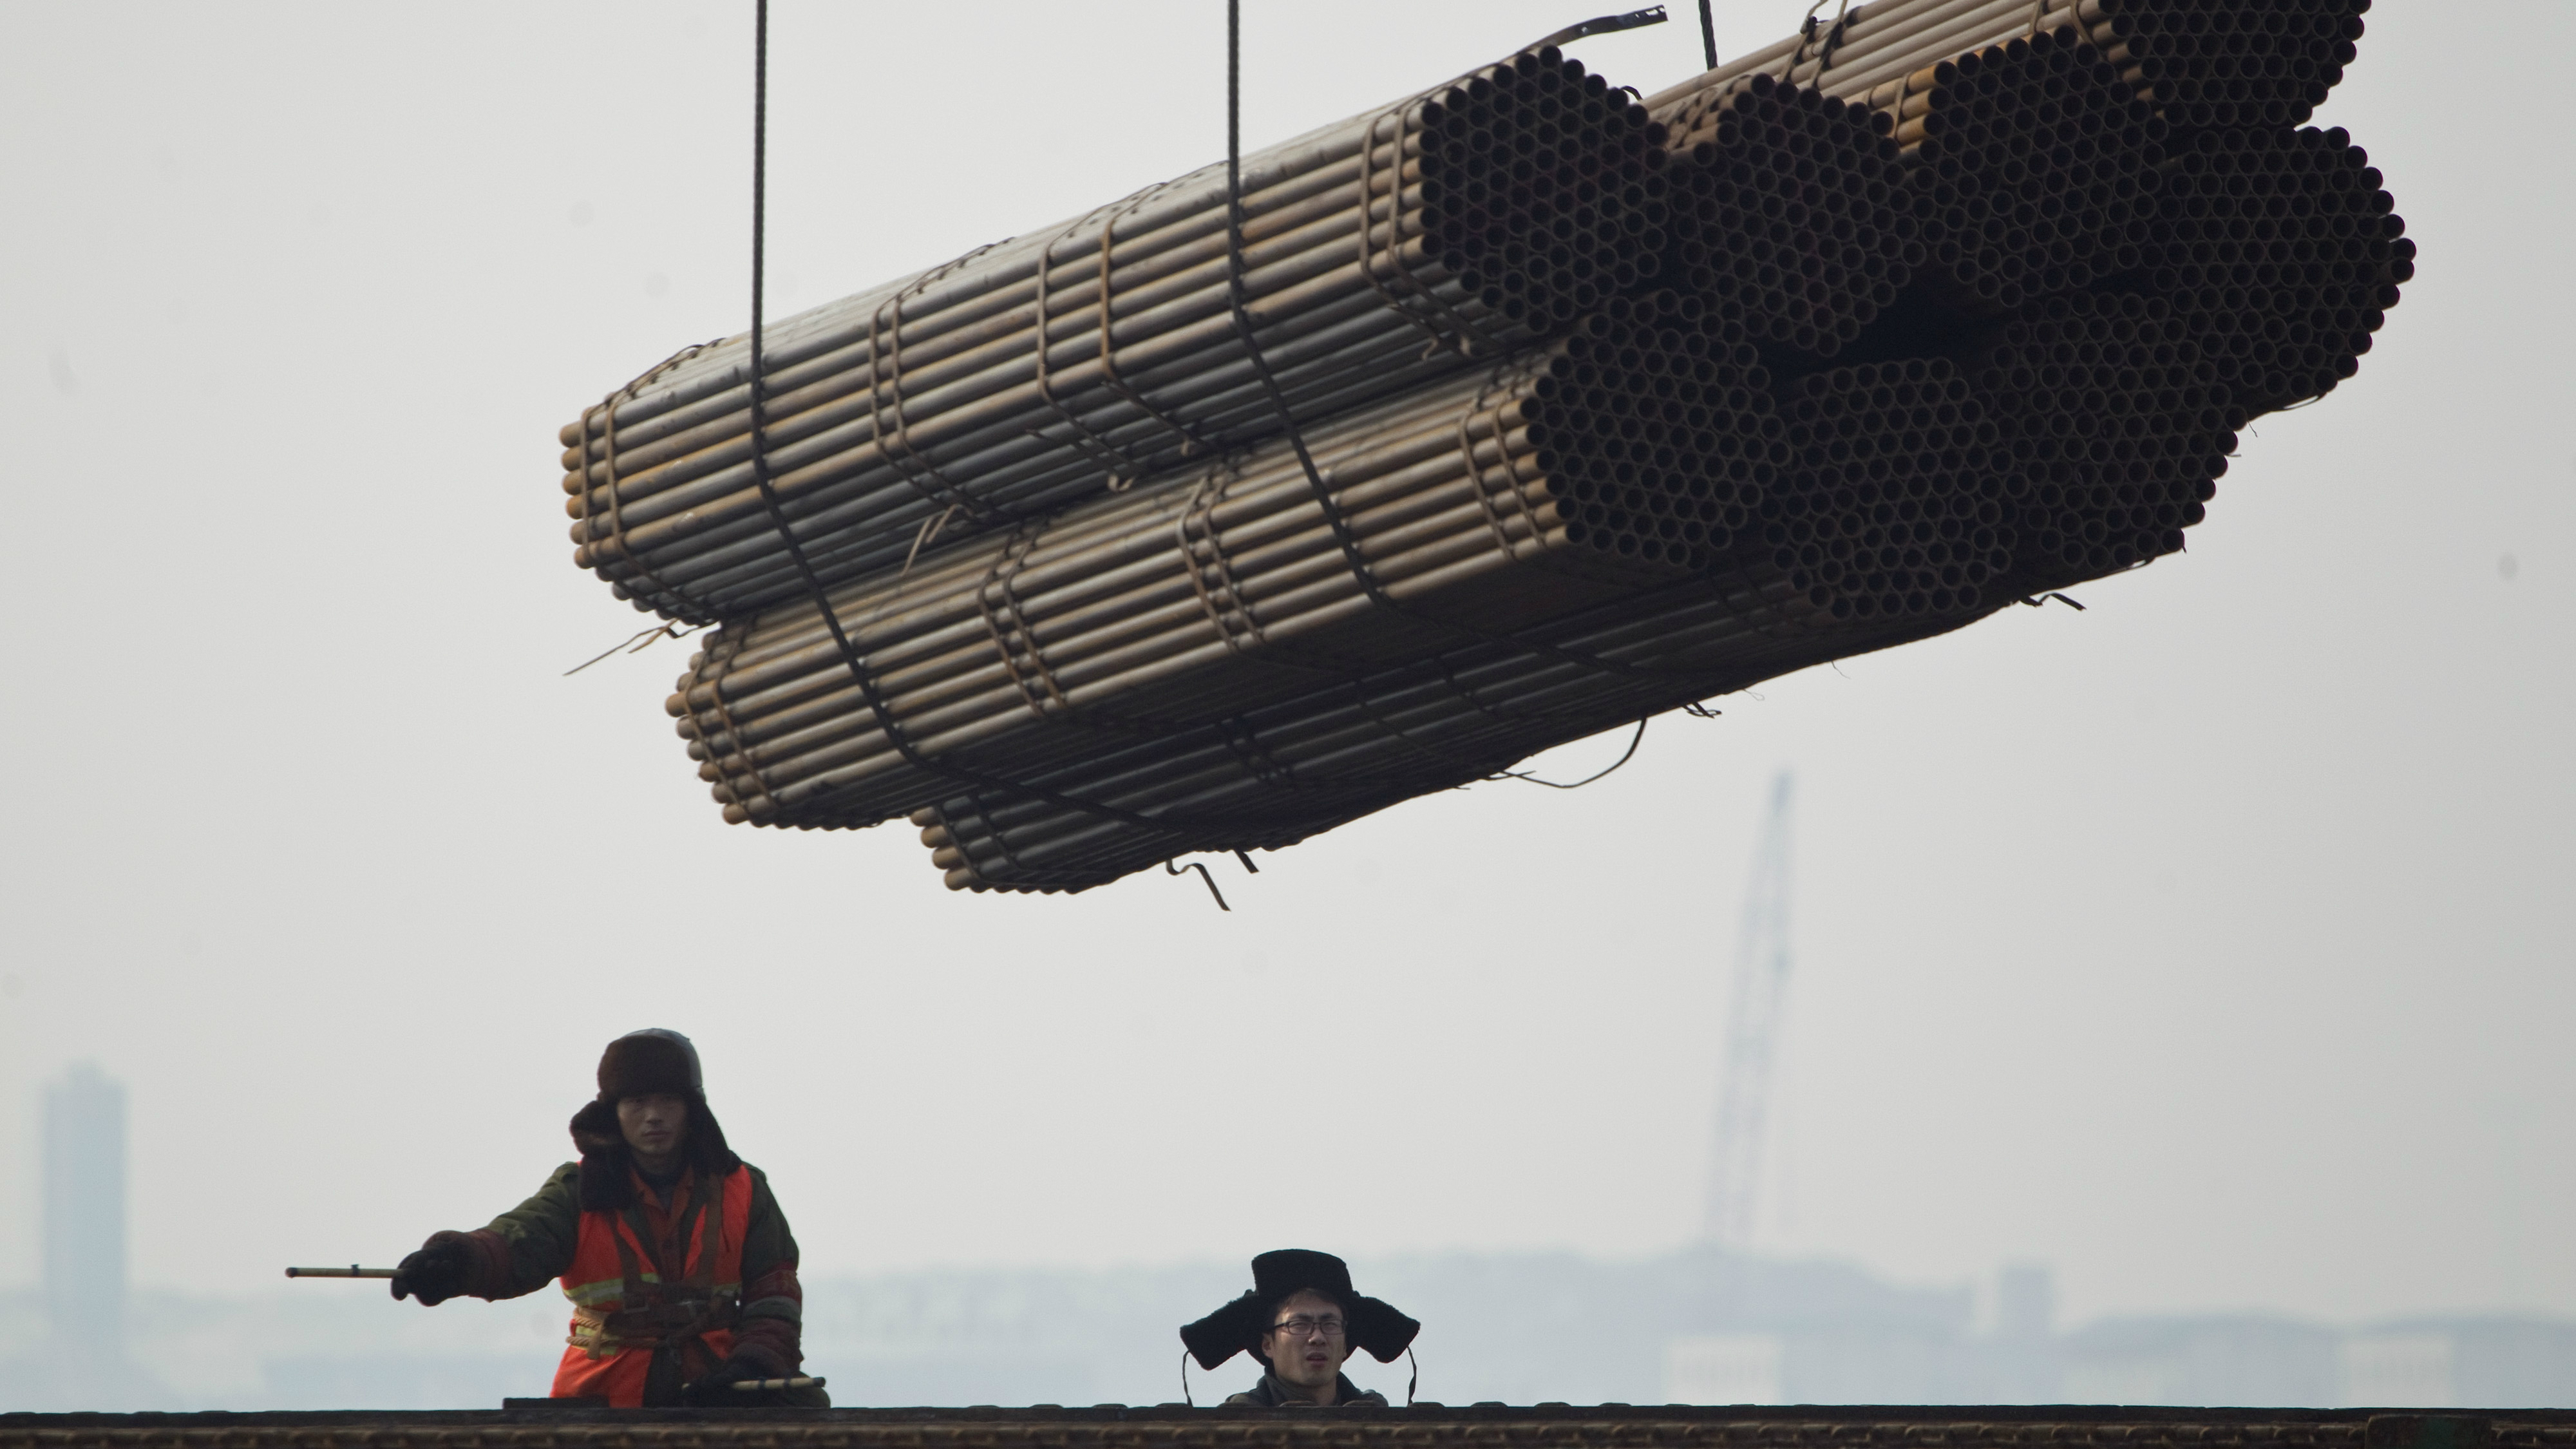 Port workers watch as steel pipes are loaded onto a freighter ship at Cao Feidian Port in Tangshan, in northern China's Hebei province, Monday, Feb. 20, 2012. (AP Photo/Alexander F. Yuan